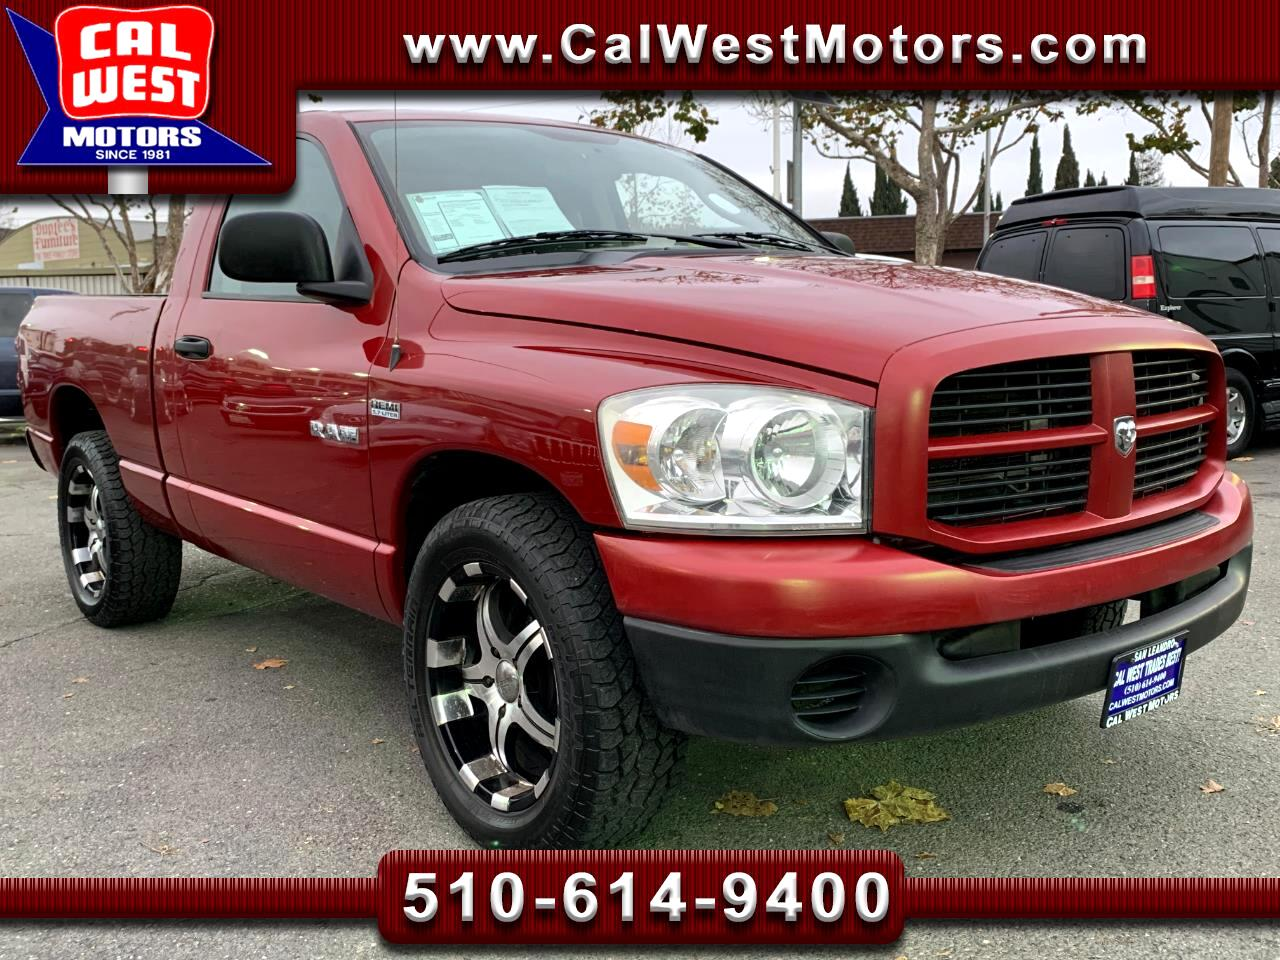 2008 Dodge Ram 1500 Regular Cab Short Bed 345HPHemiV8 ExClean GreatMtn